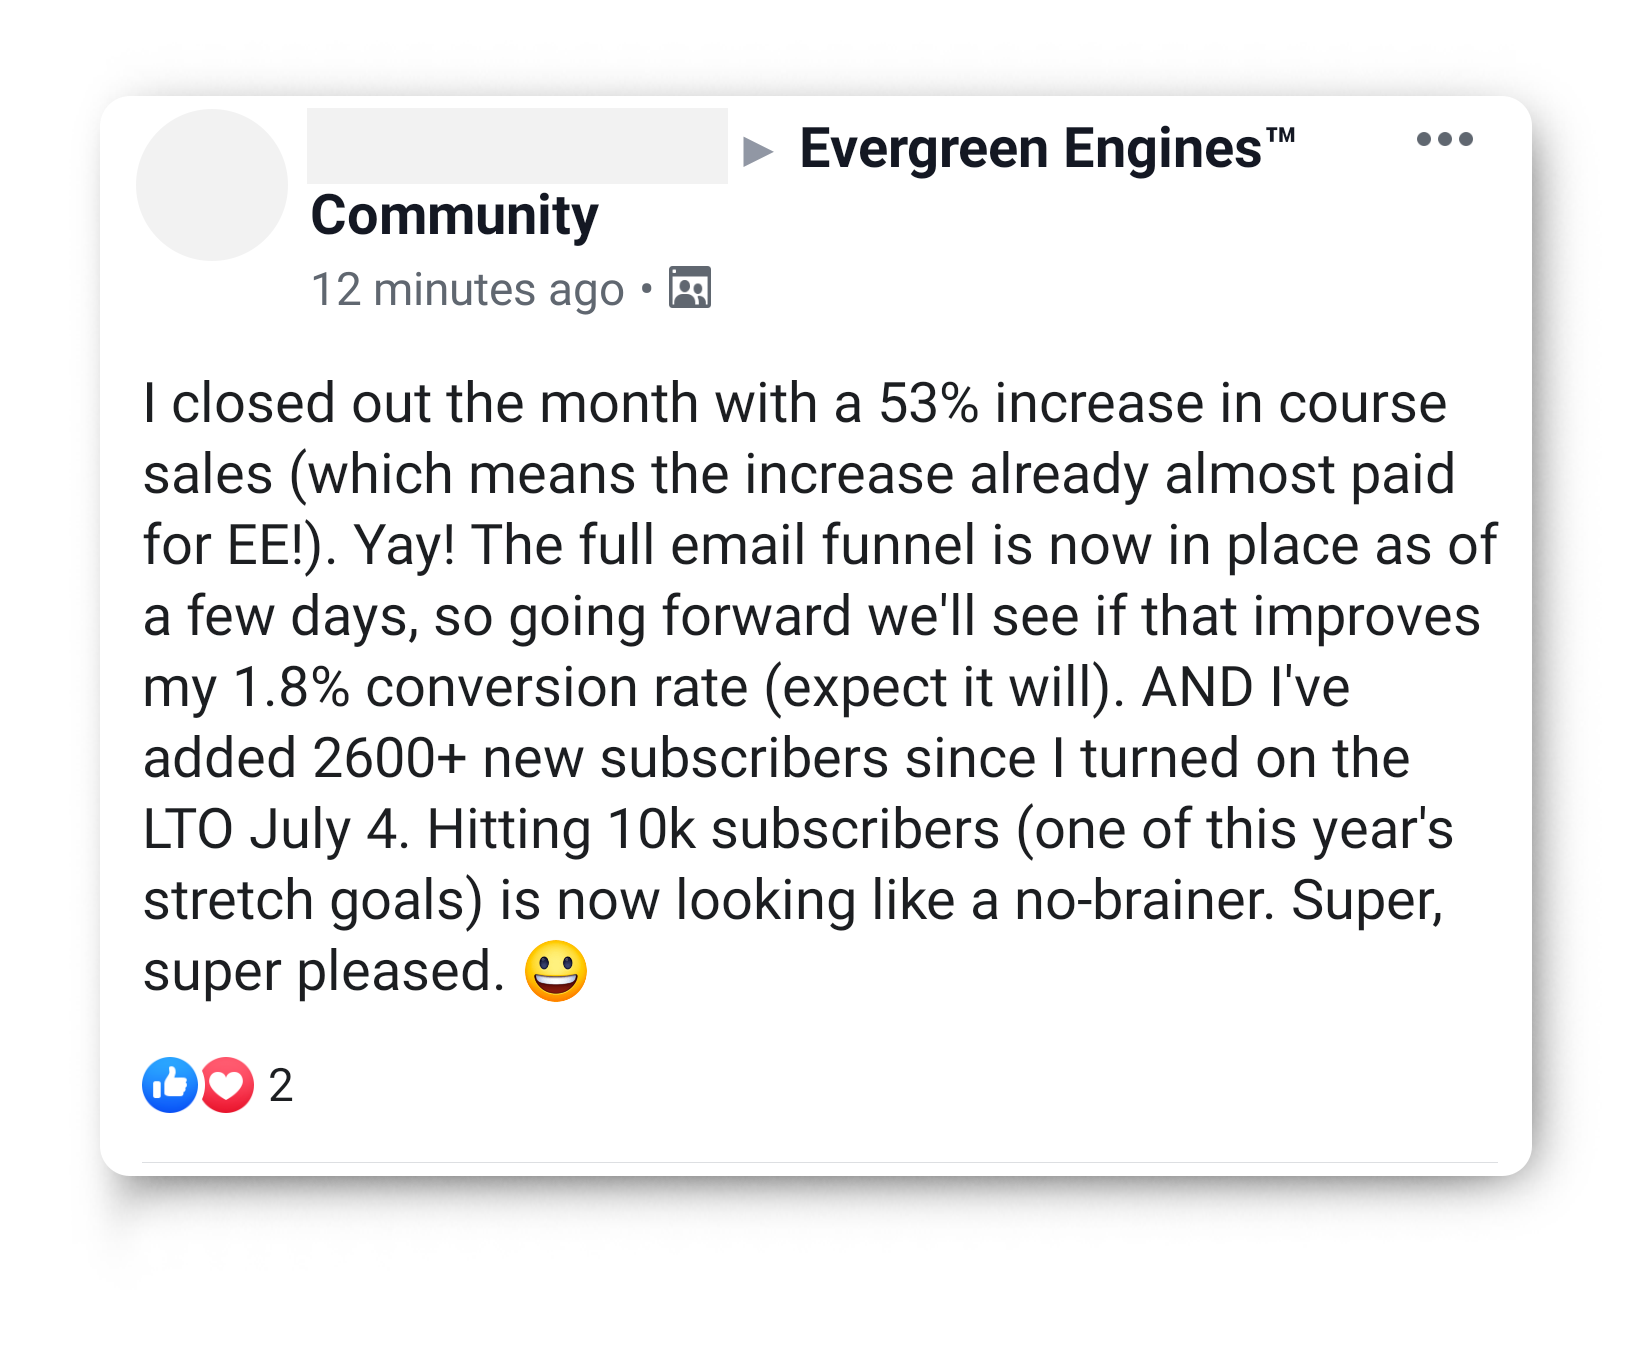 increase in course sales wit Evergreen Engines